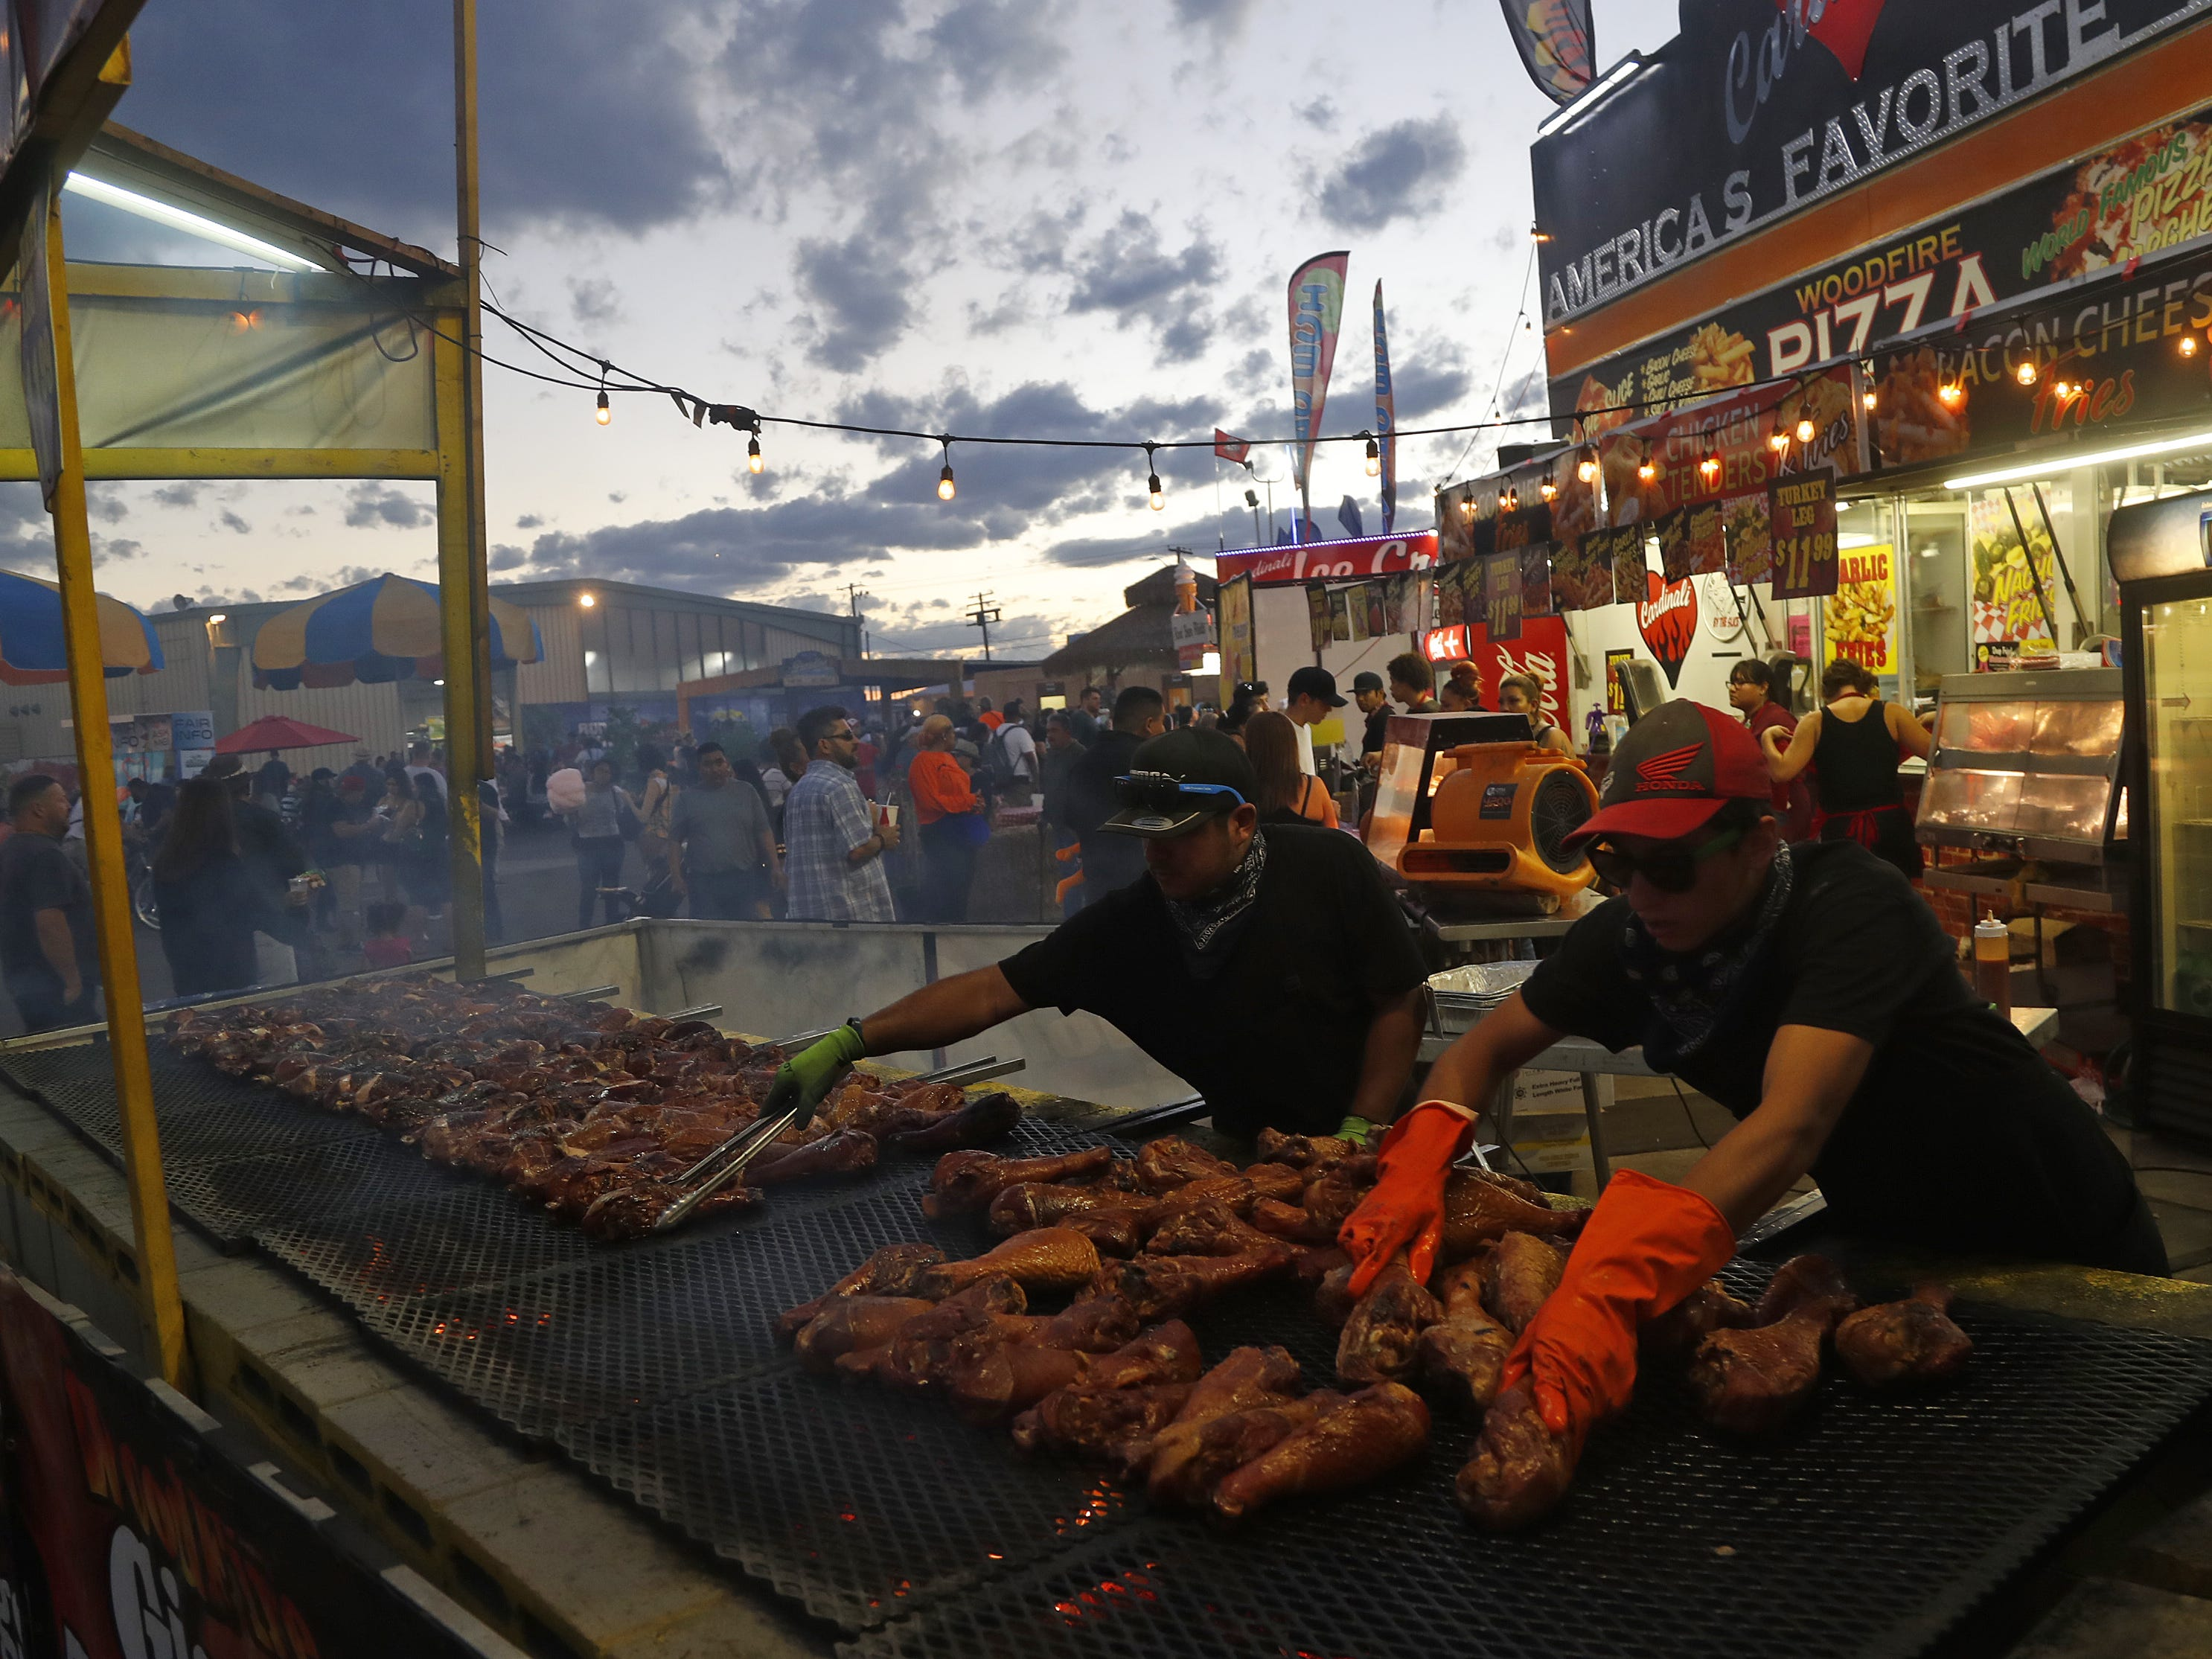 Turkey legs are grilled and spread out at Pigley's at the Arizona State Fair in Phoenix, Ariz. on October 21, 2018.